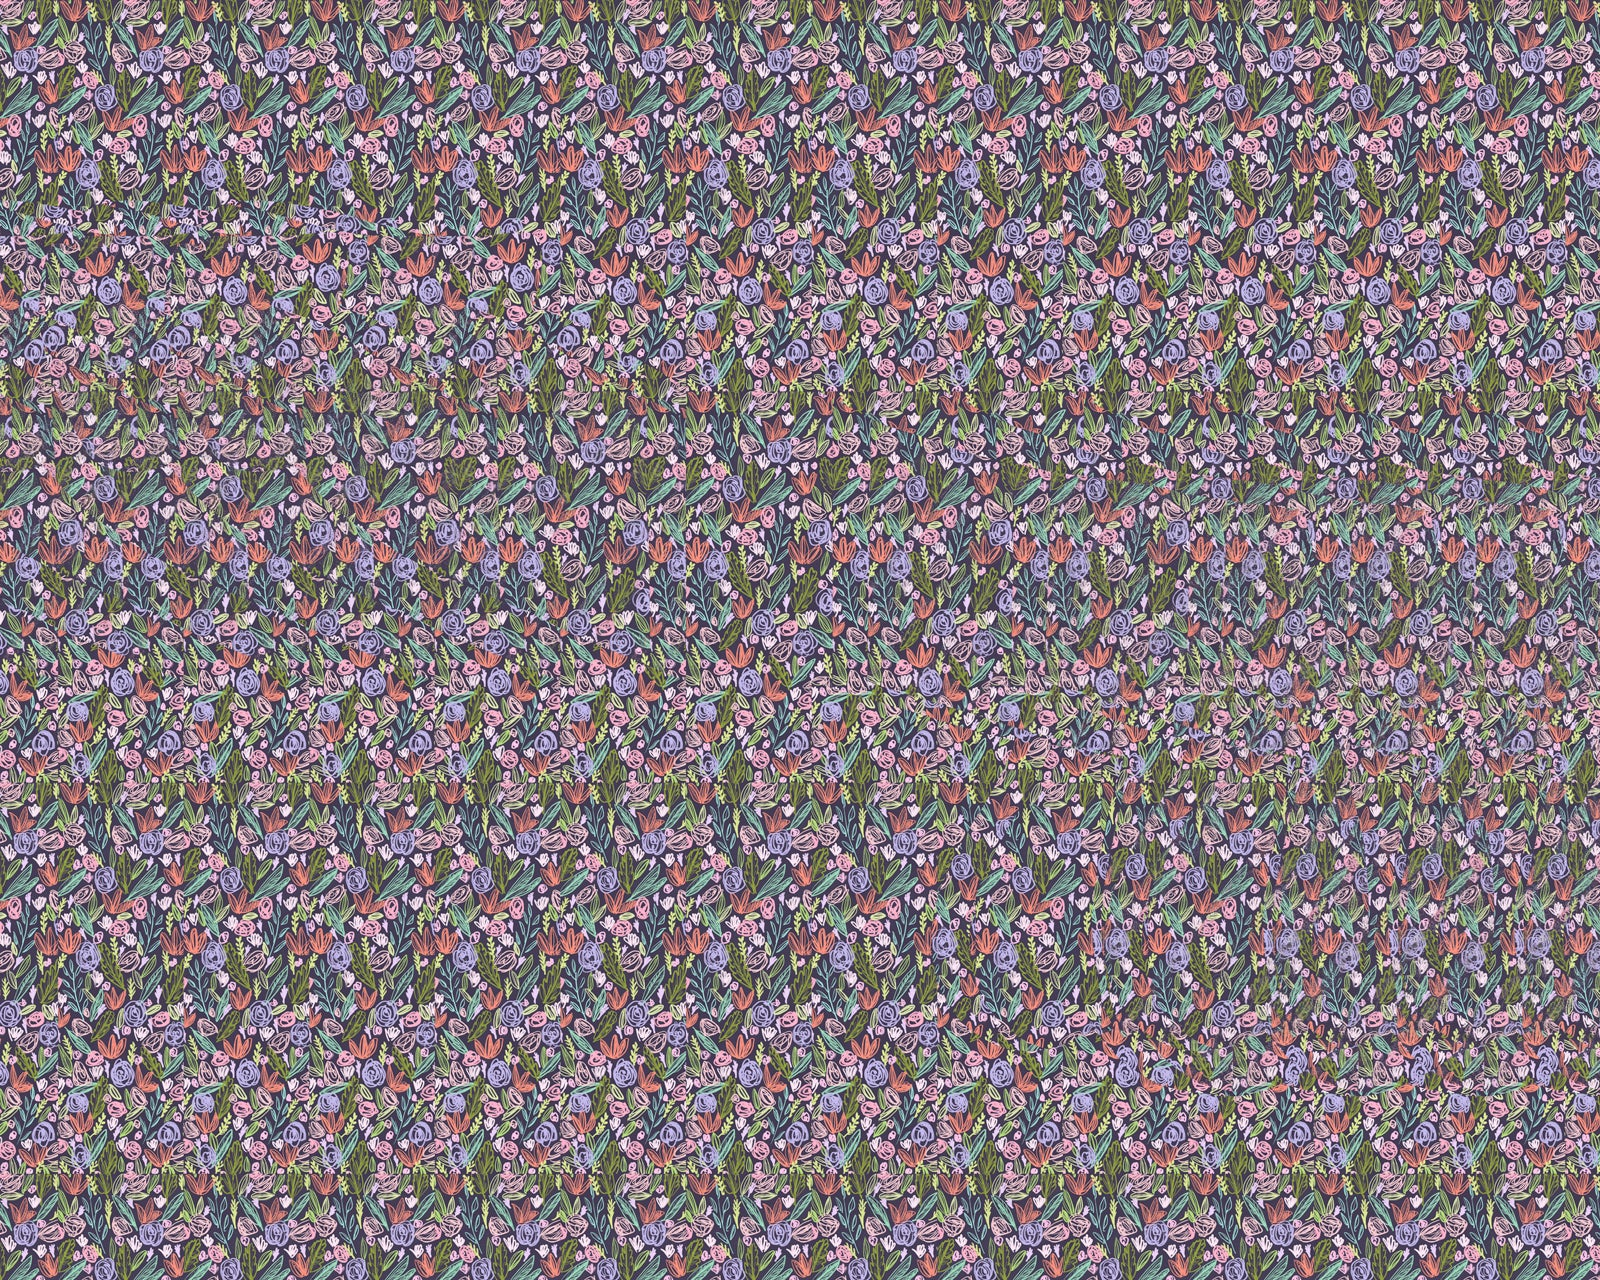 magic eye stereogram floral pattern floating dick illustration drawing 3d hidden image